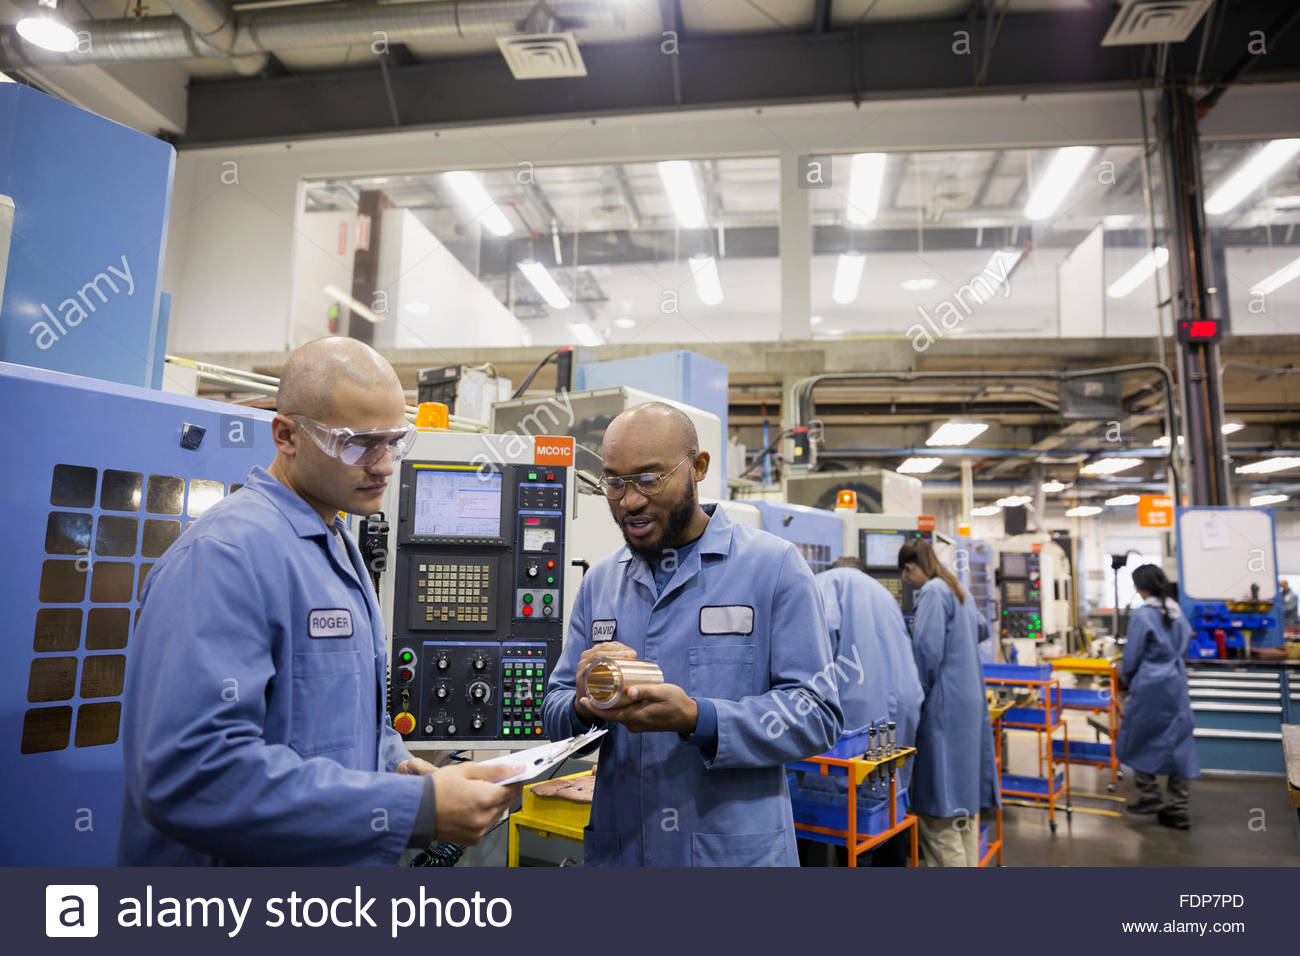 Workers discussing part in textile factory - Stock Image